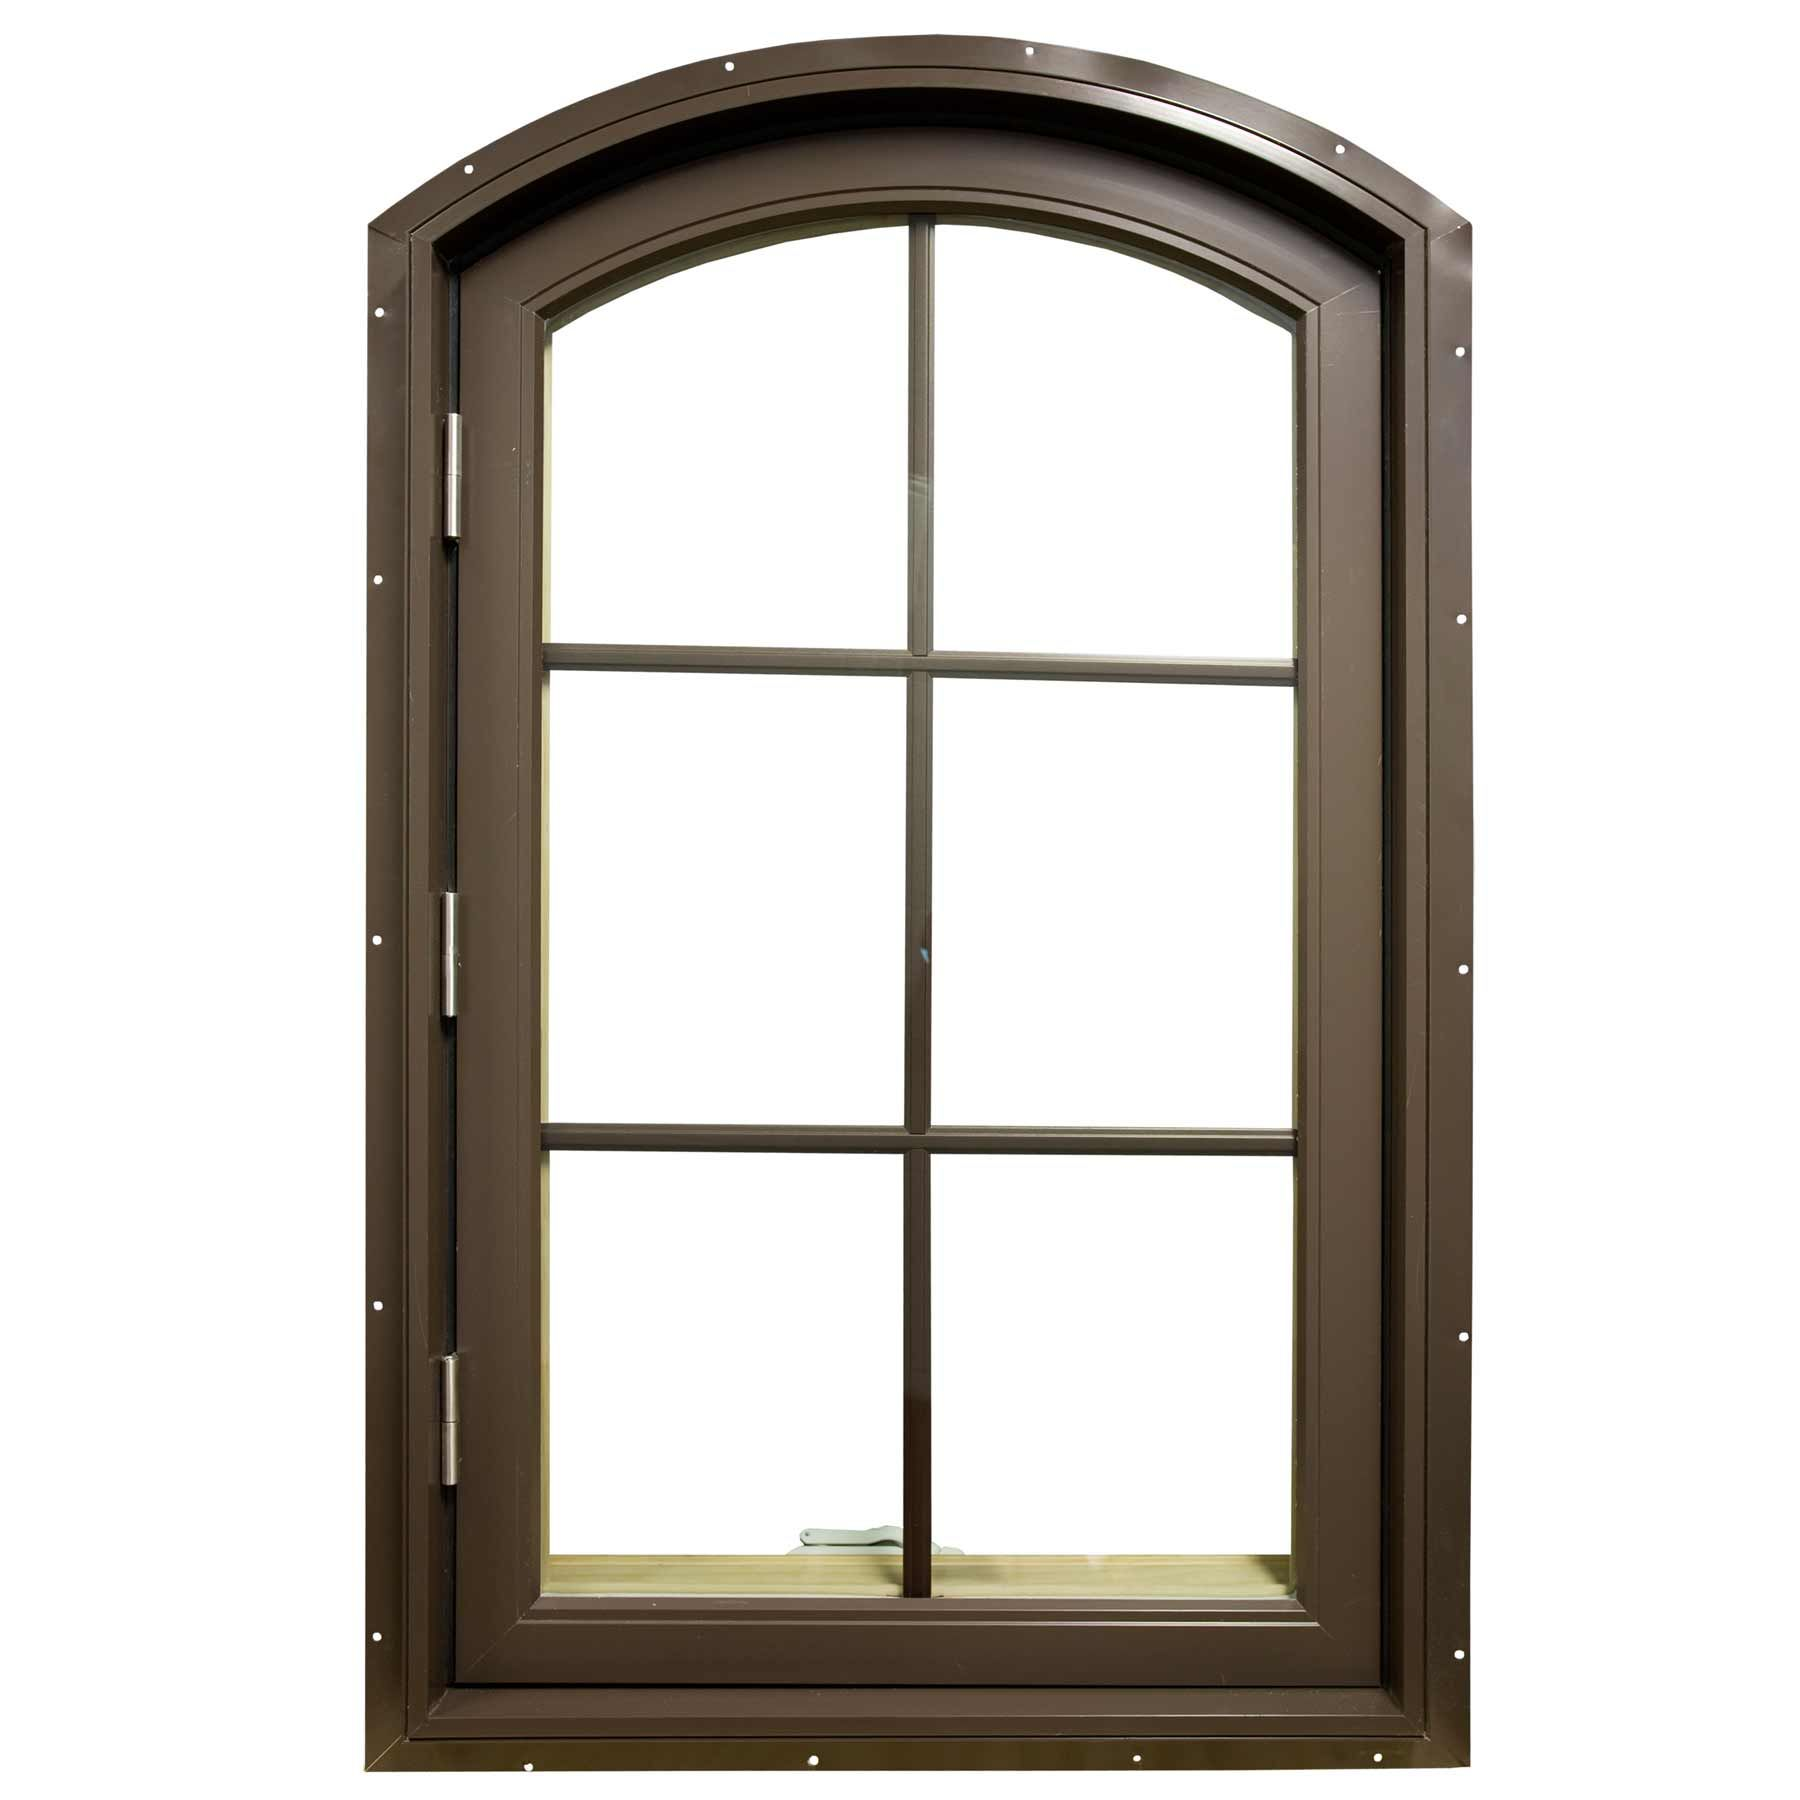 Aluminum casement windows for home feel the home for Window design clipart